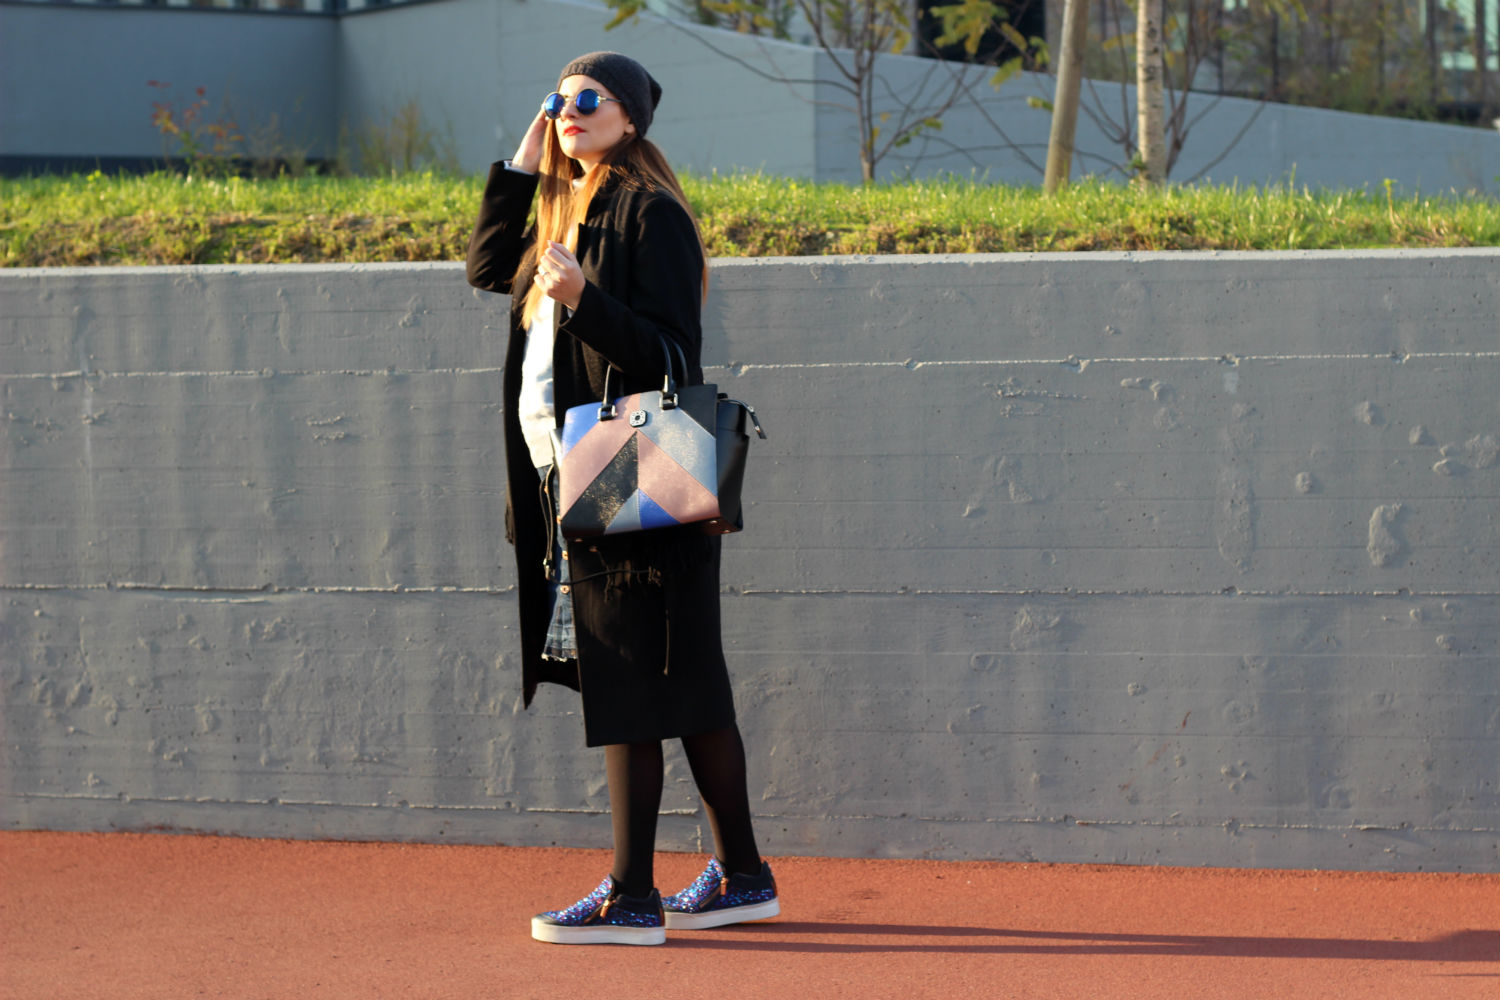 elisabetta bertolini fashion blogger incinta